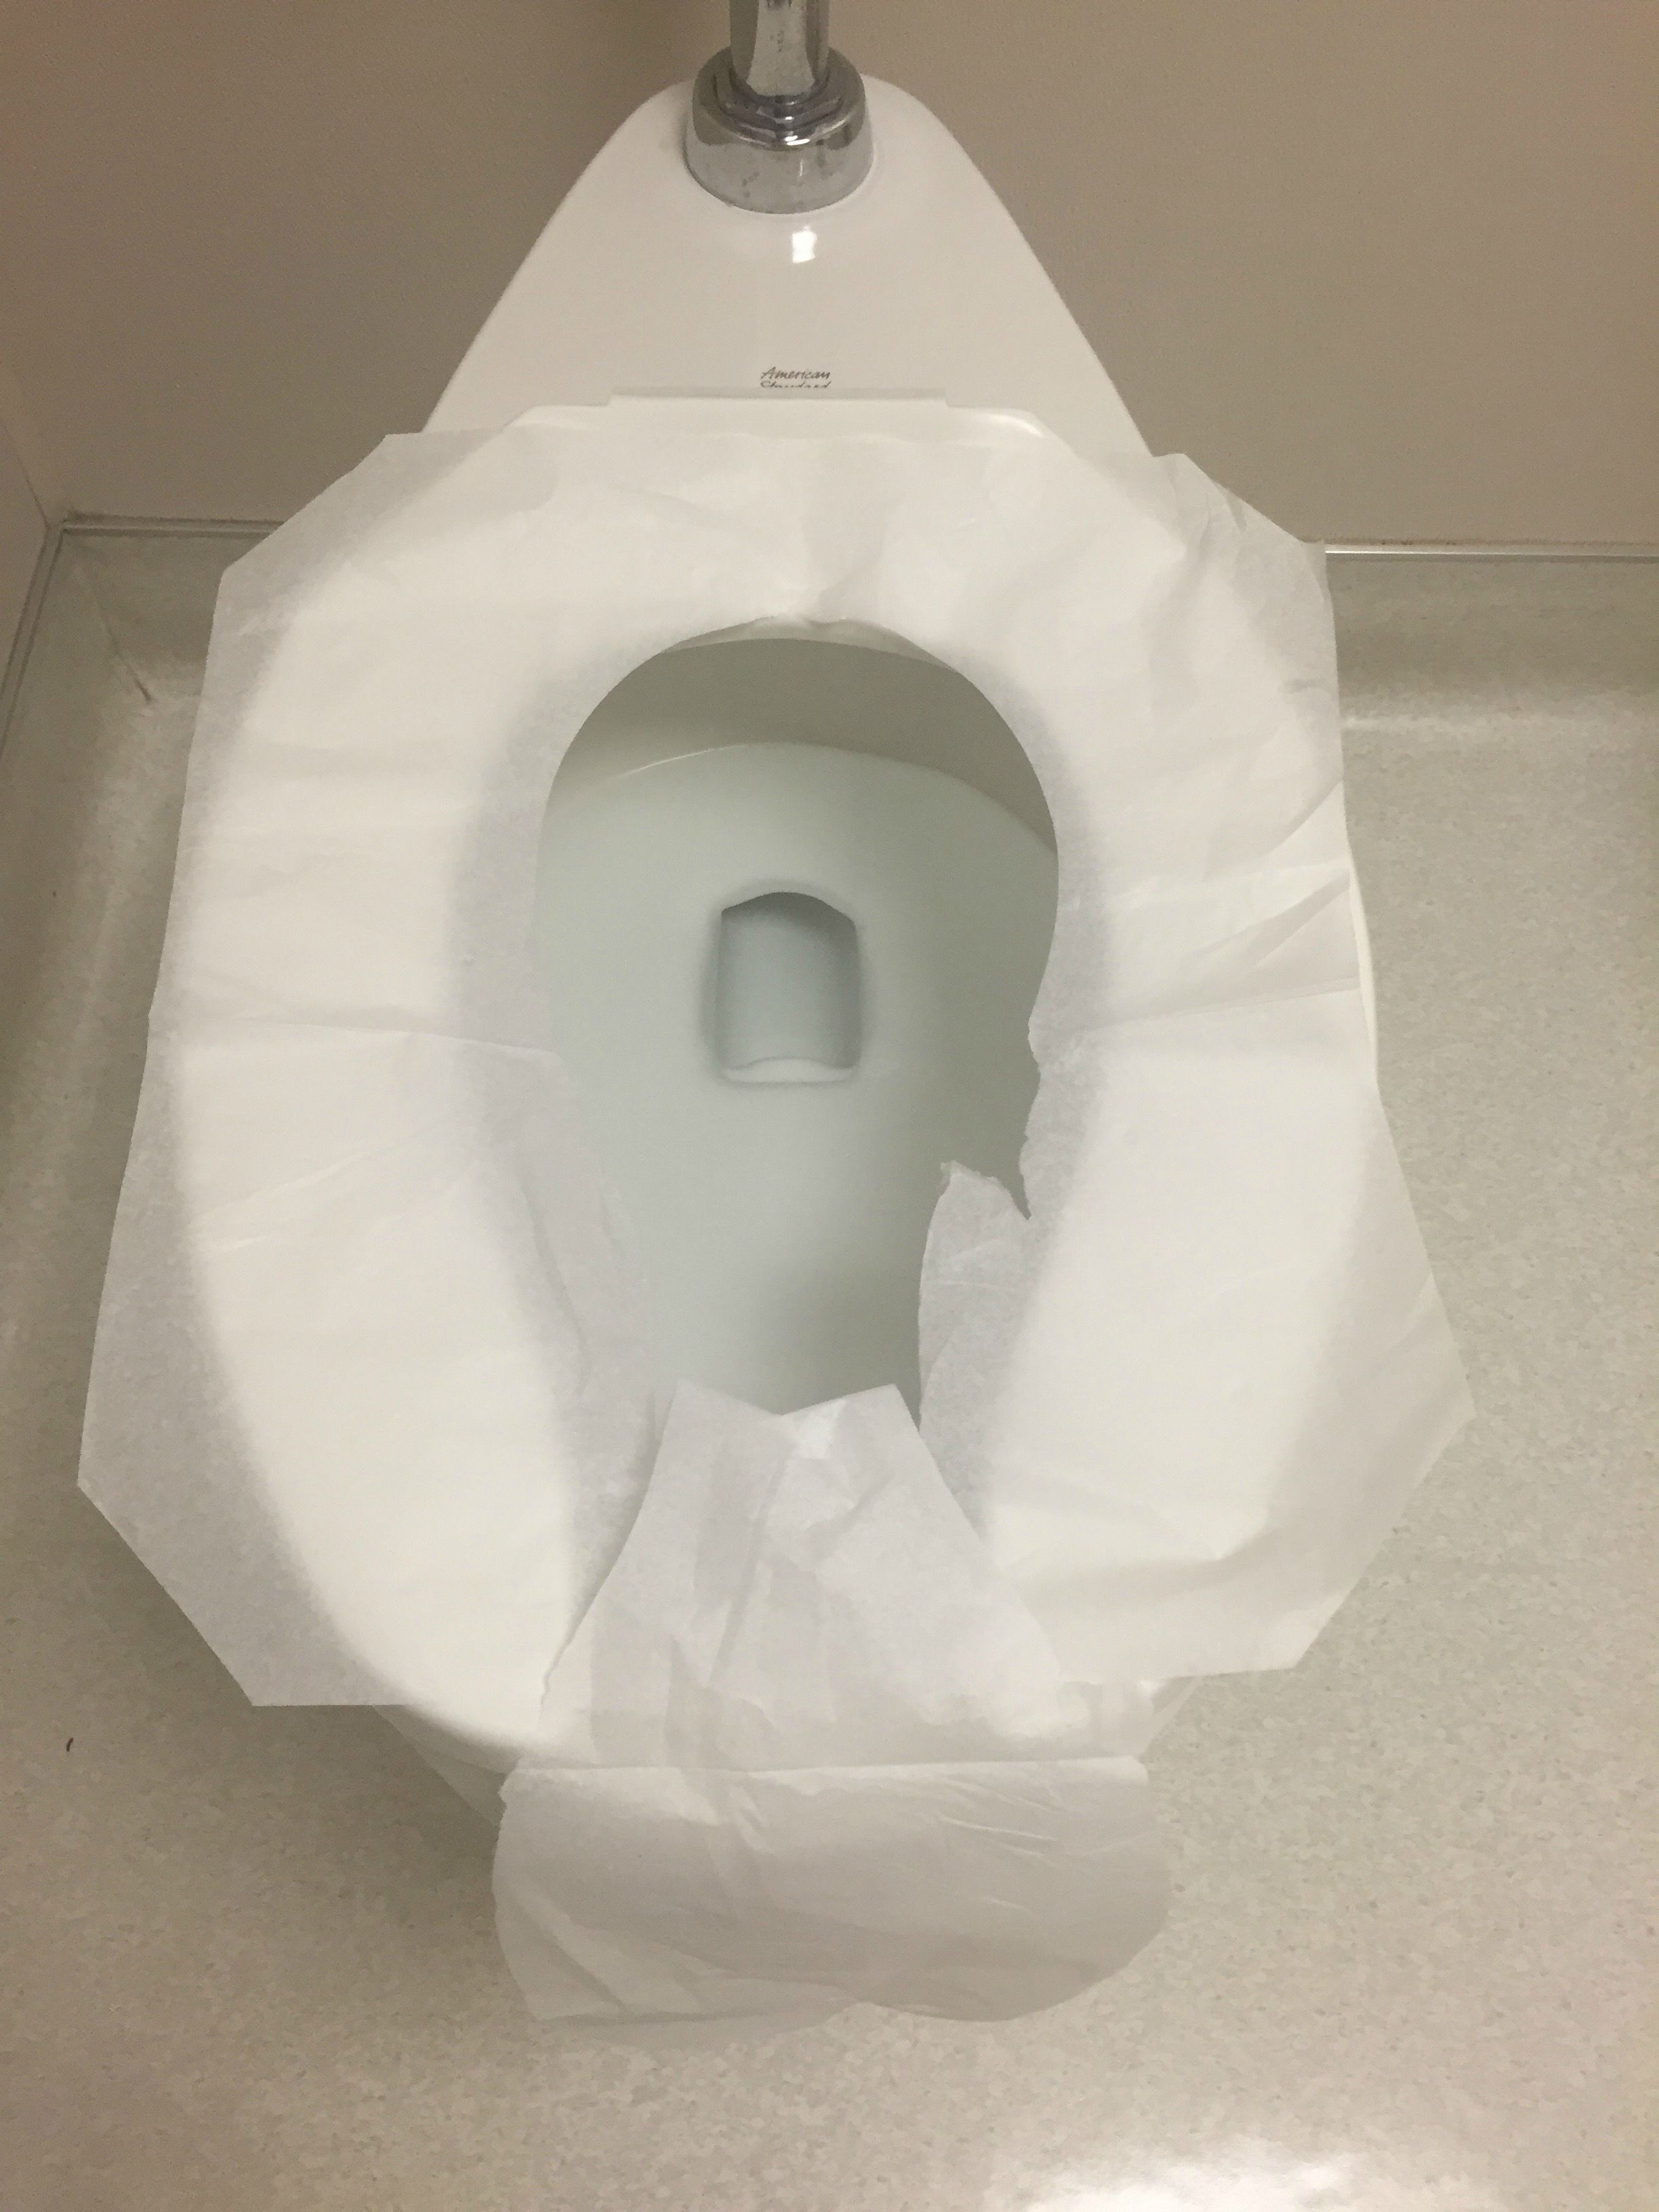 proper way to put on a toilet seat cover   who knew!?!? | Toilet